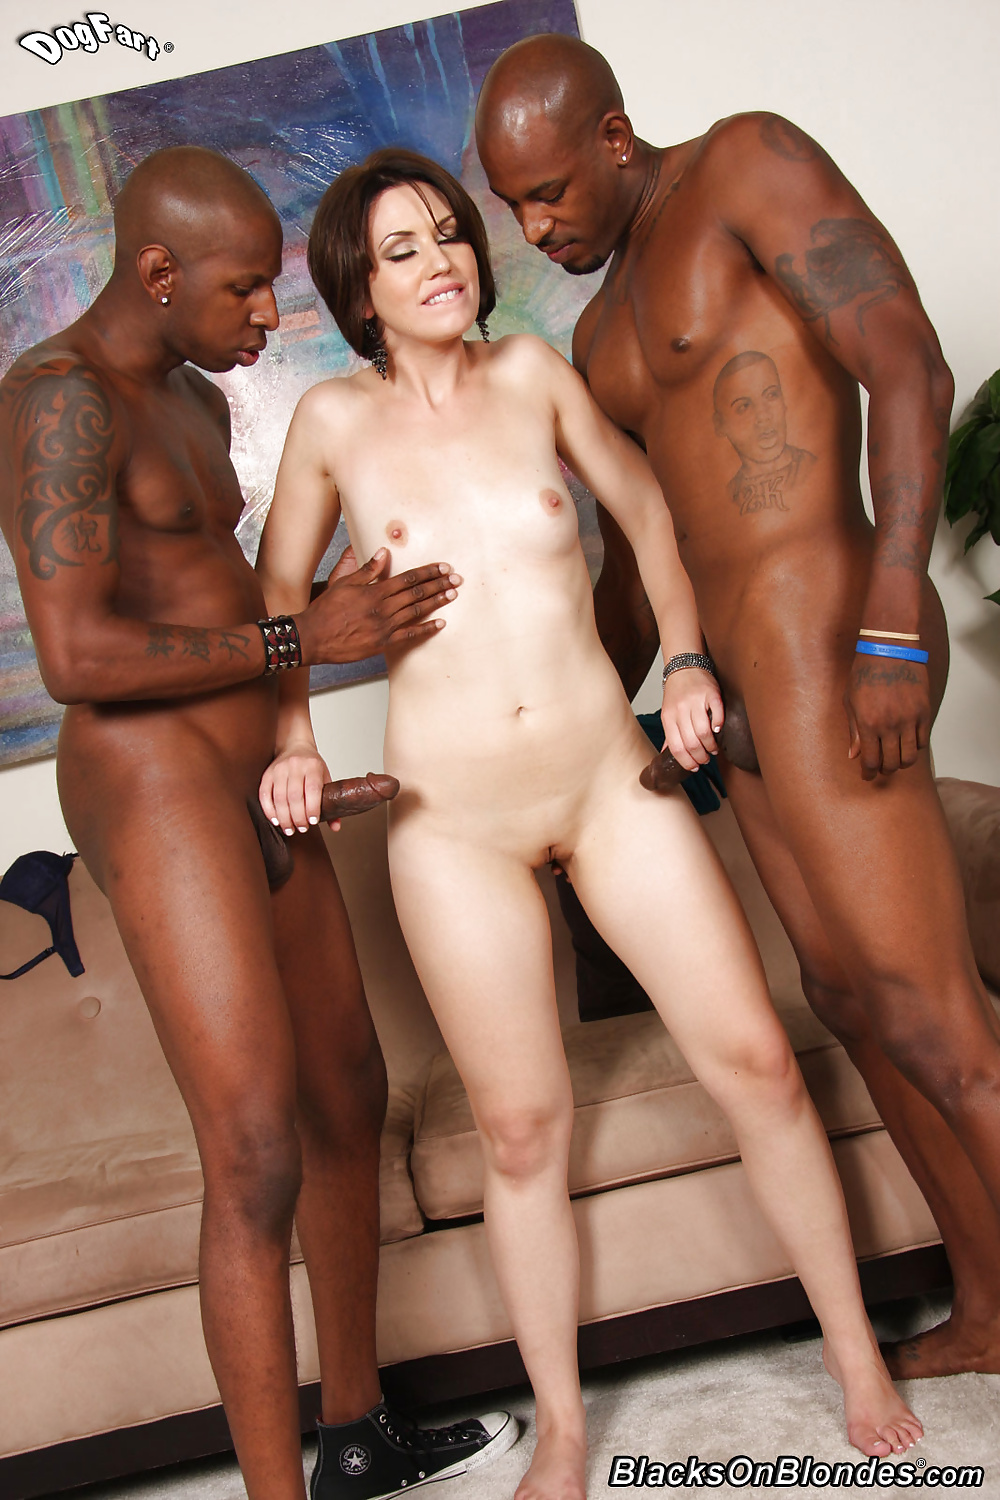 naked-black-guys-white-girl-naked-girls-bein-naughty